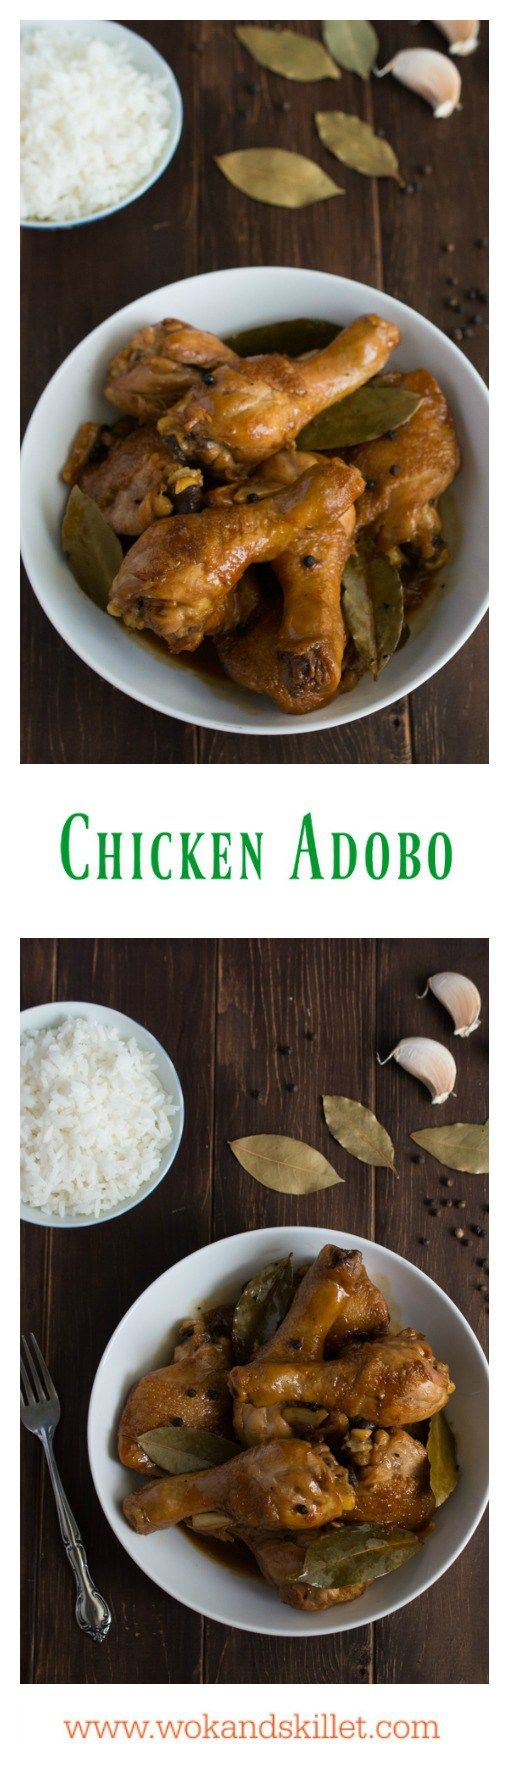 Chicken Adobo is a Filipino classic that has been dubbed the unofficial dish of the Philippines. A simple blend of soy sauce, garlic, vinegar with bay leaves and whole peppercorns yields one of the most incredible sauces you have ever tasted.